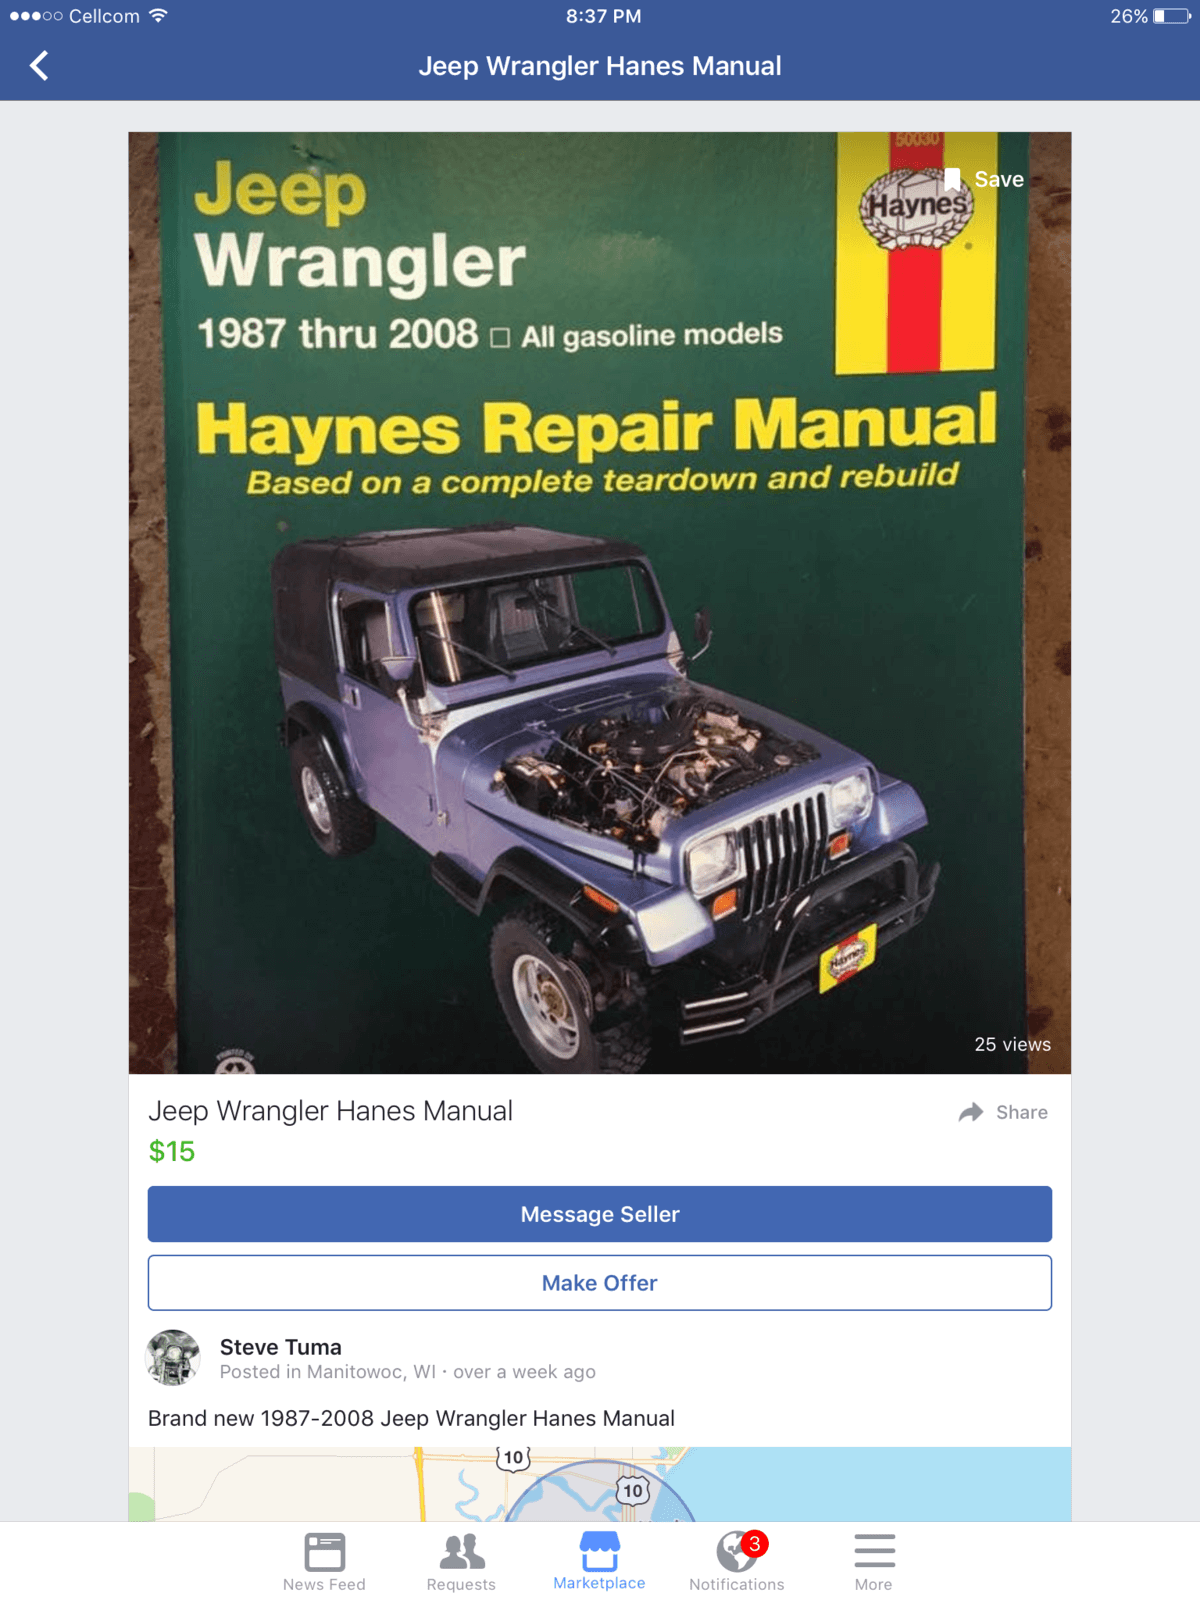 I own a 2000 tj sport . Will this manual help me as I fix my jeep up?